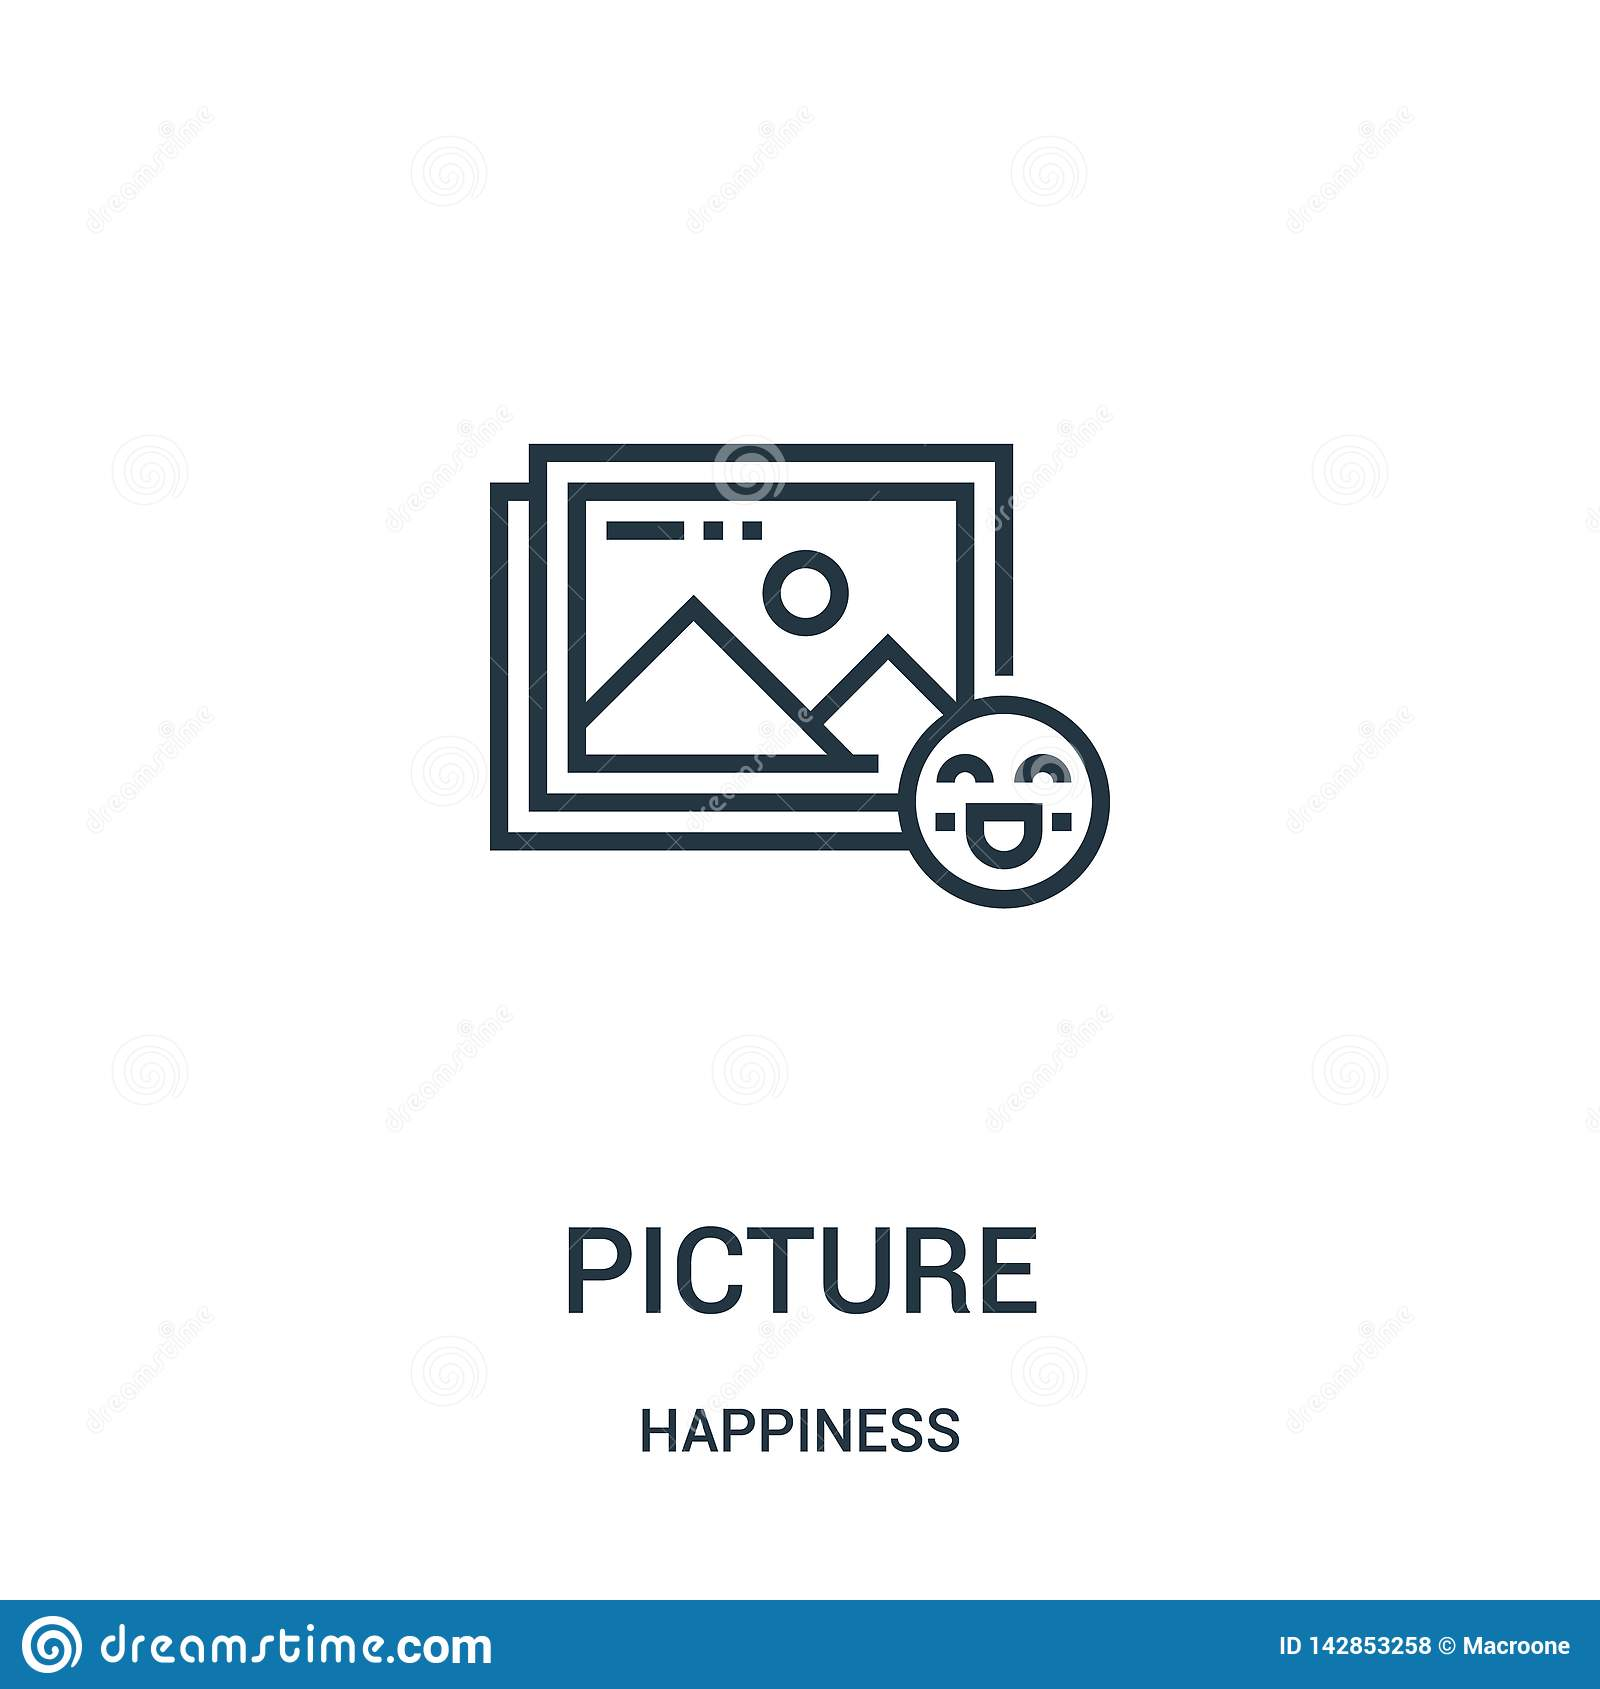 picture icon vector from happiness collection. Thin line picture outline icon vector illustration. Linear symbol for use on web